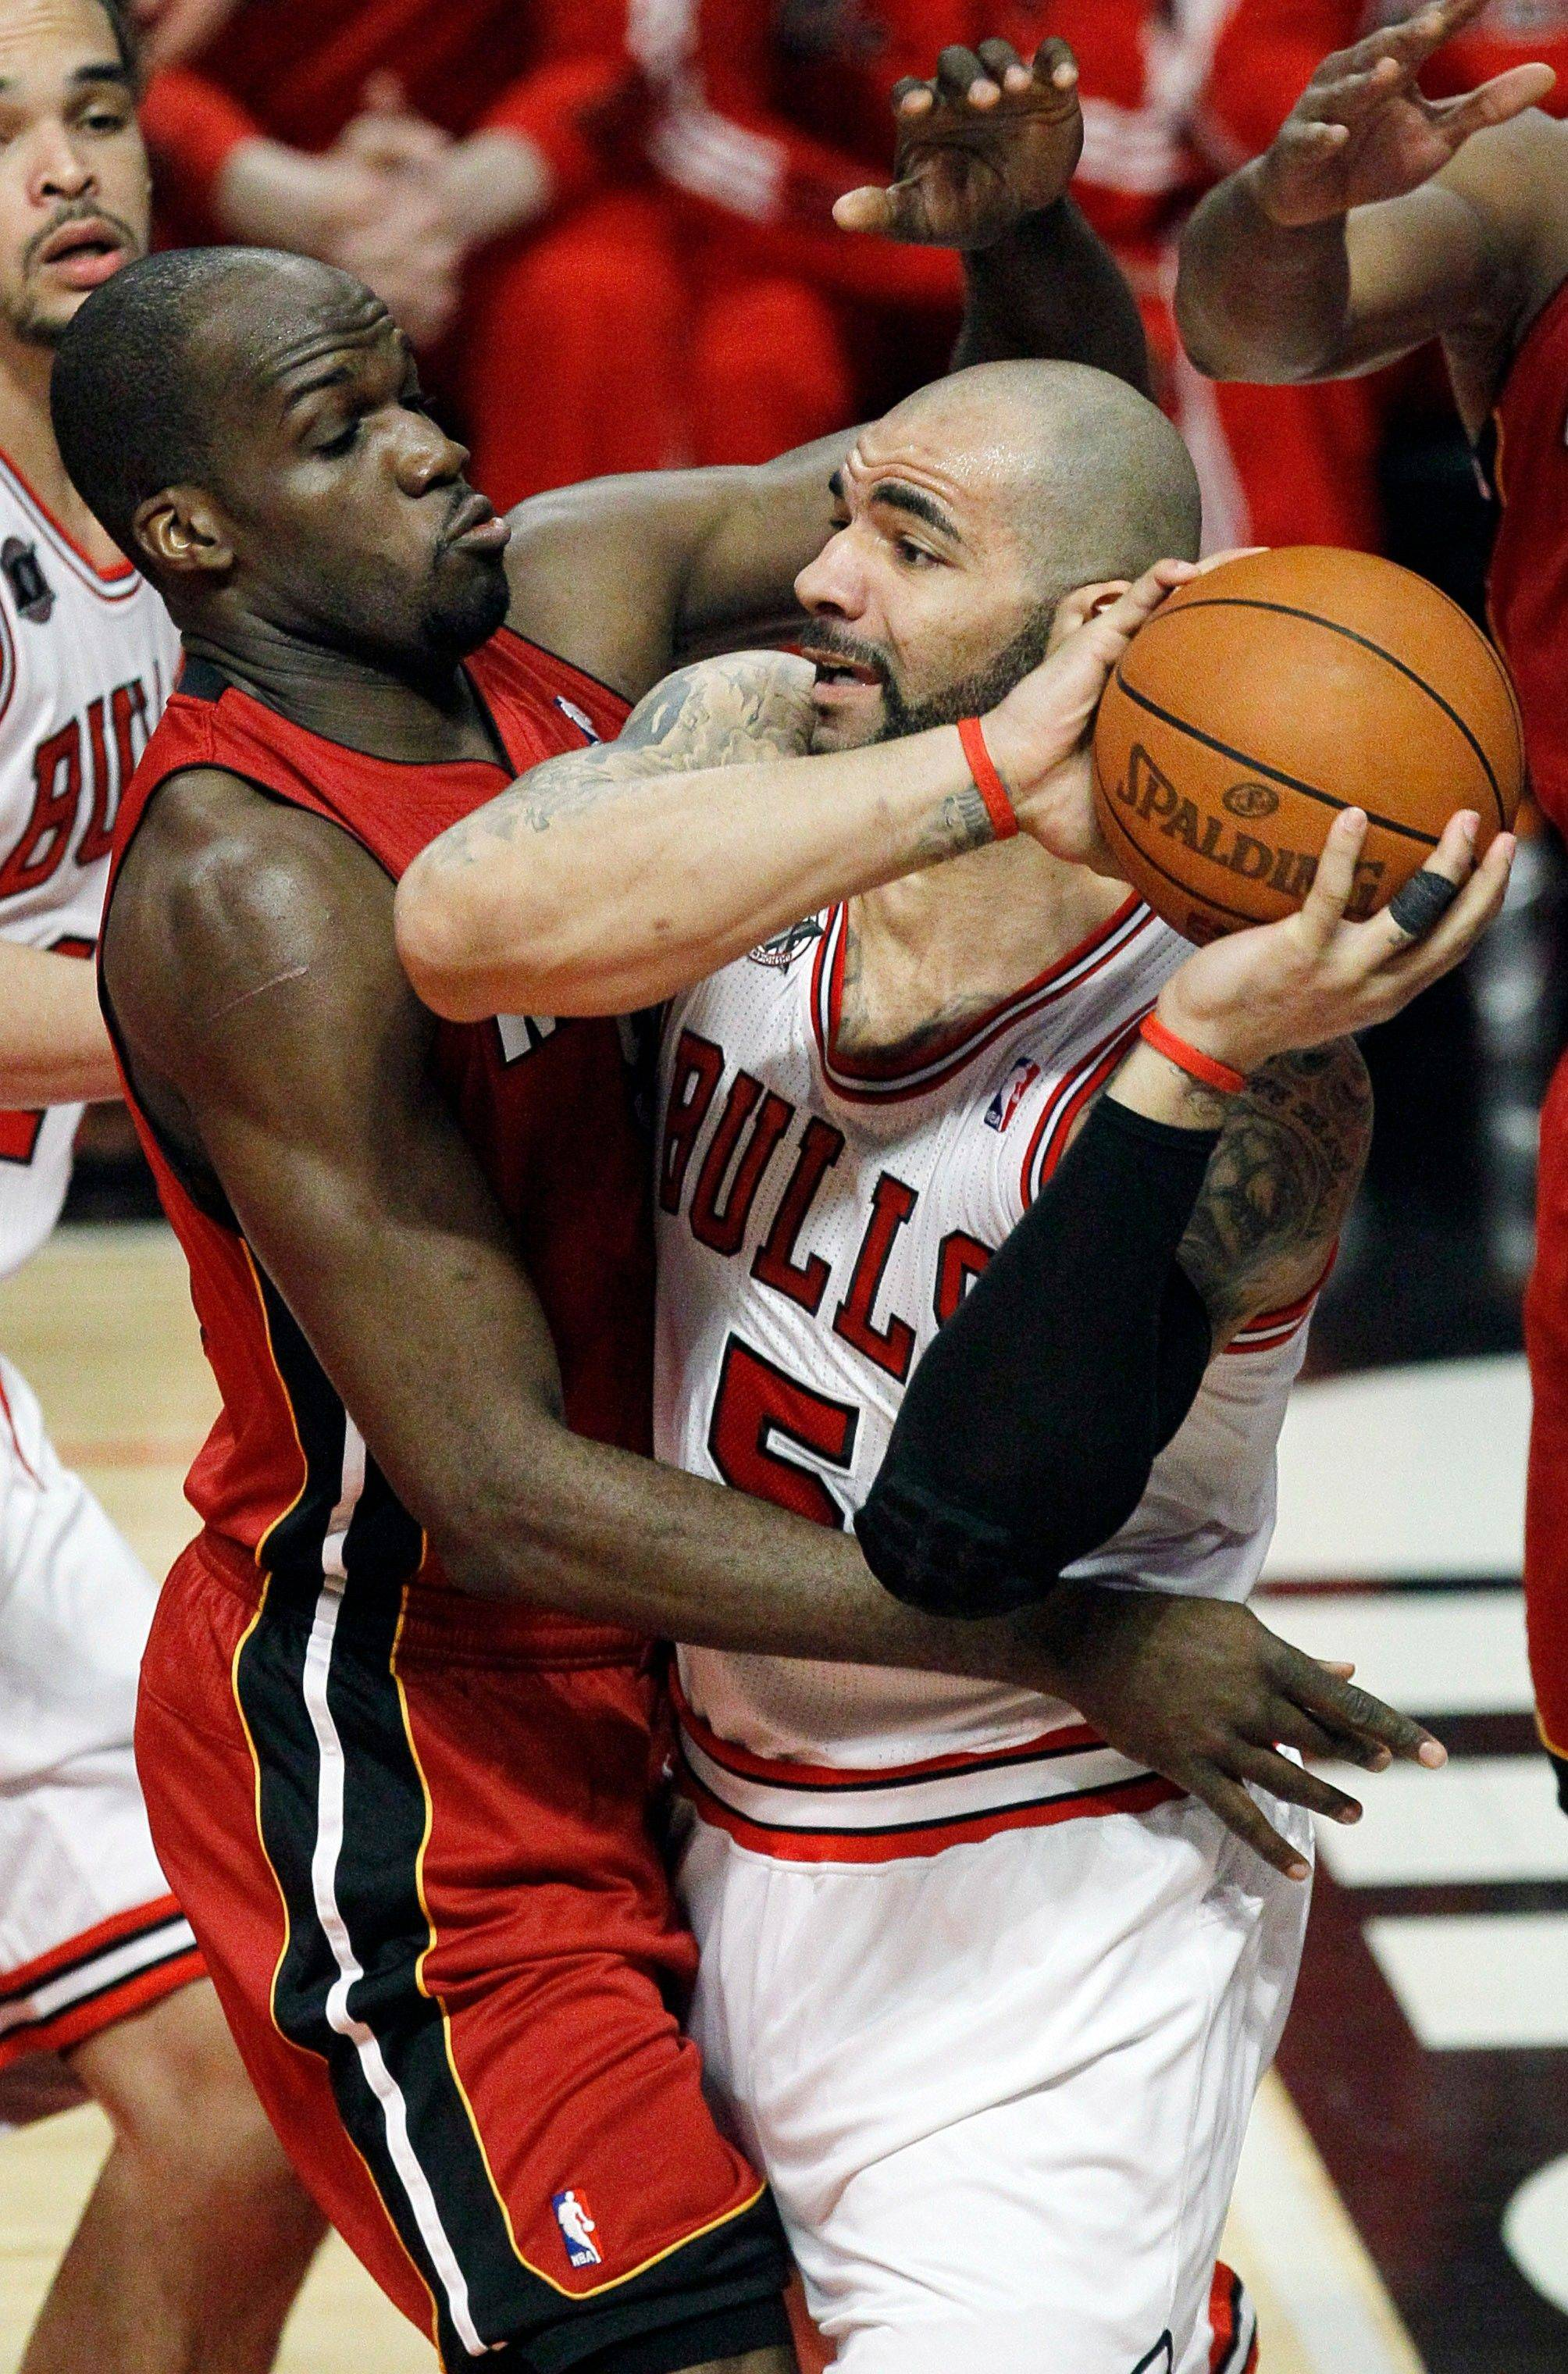 Carlos Boozer (5) looks to pass against center Joel Anthony during Game 2 of the Eastern Conference finals. Boozer has 21 points and 17 rebounds in the series' first two games.